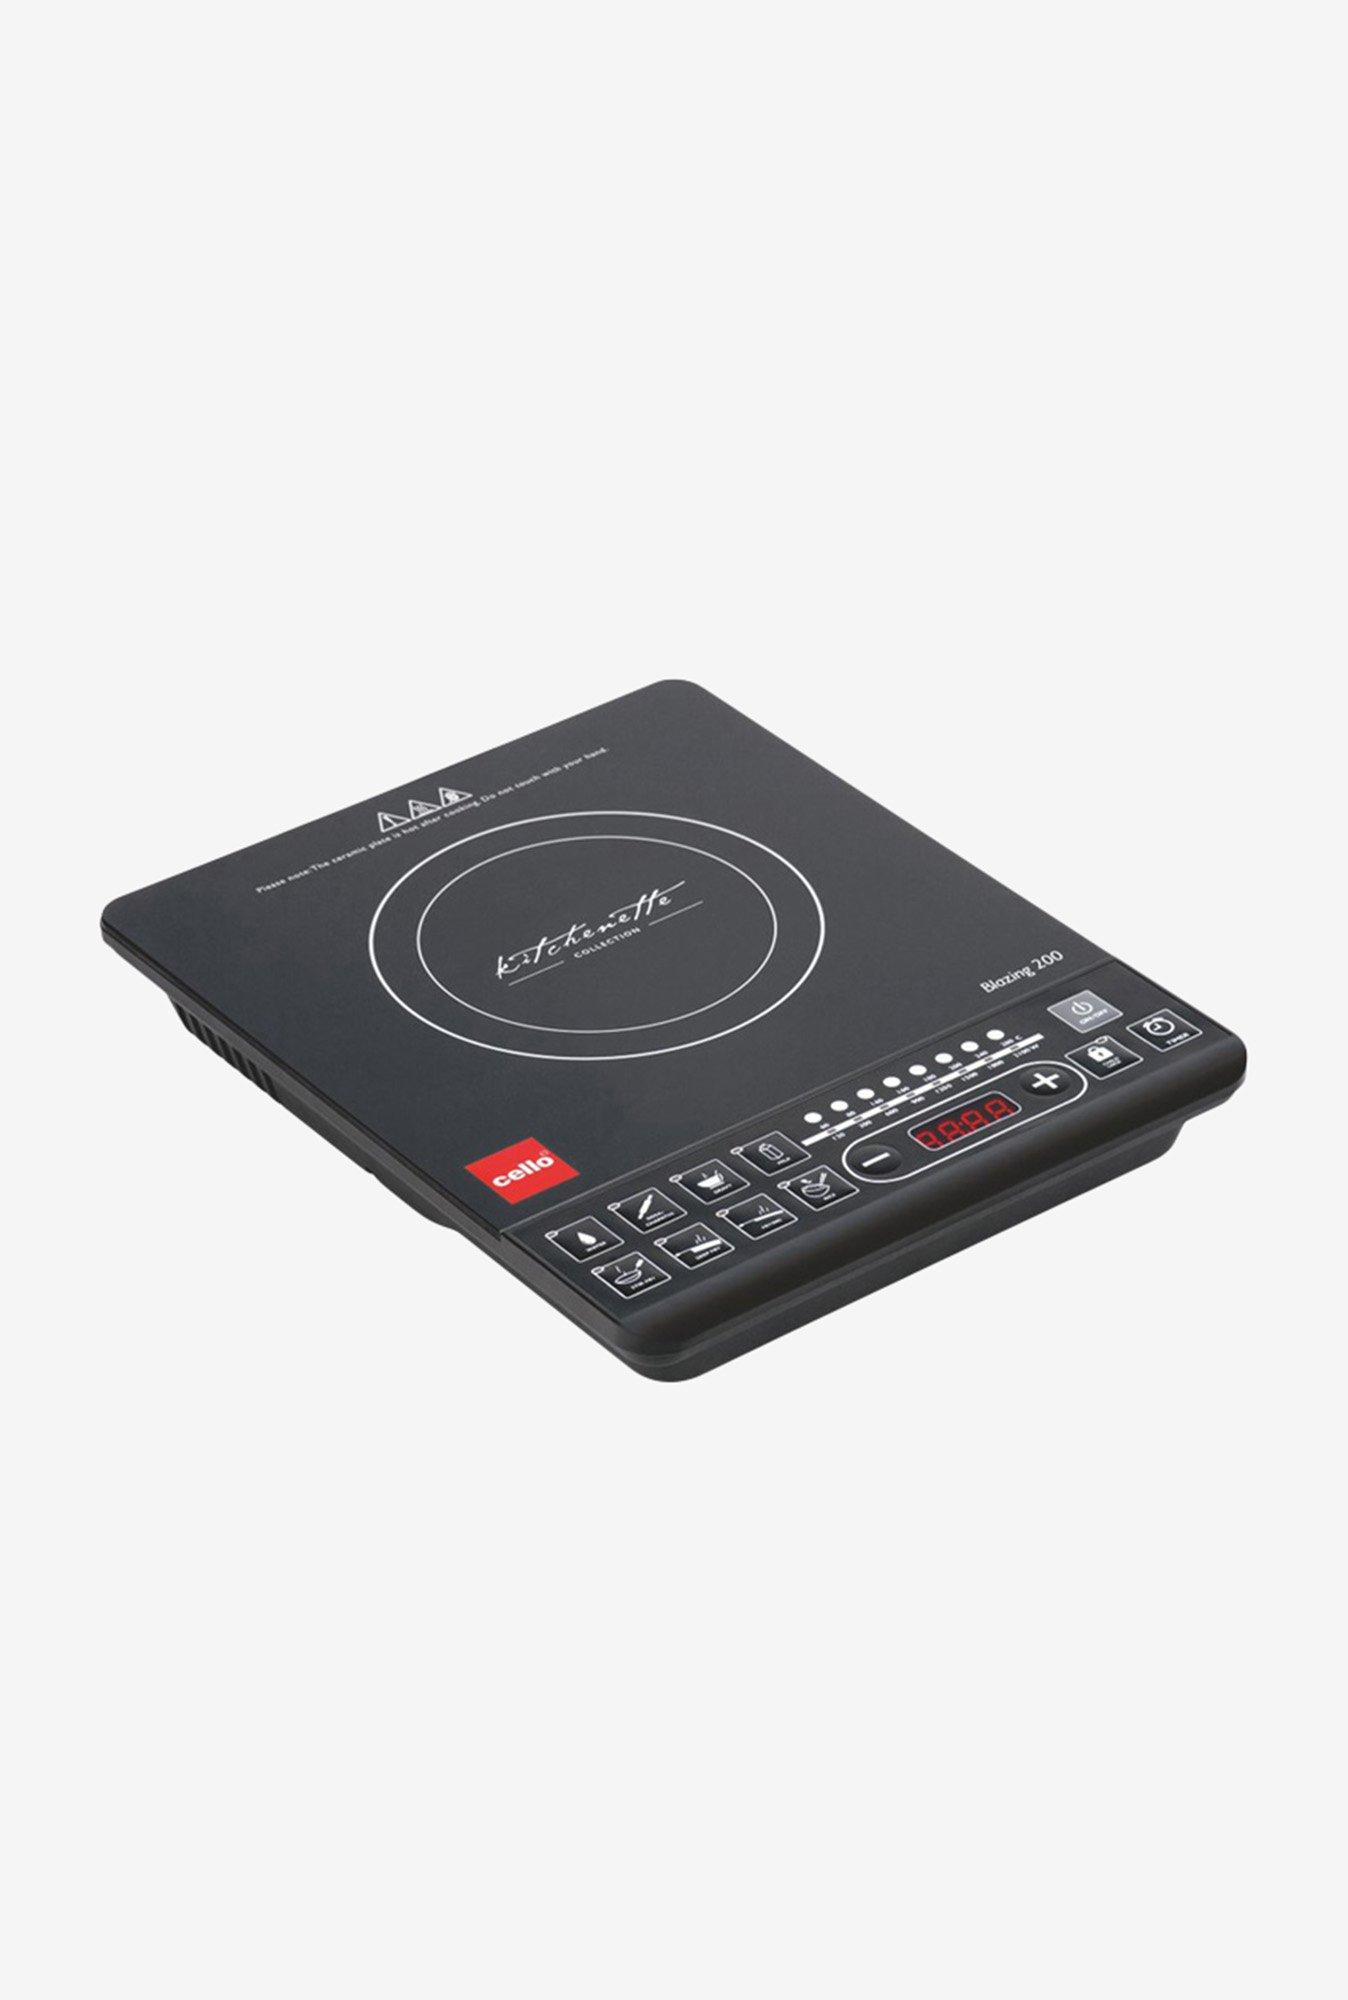 Cello Blazing 200 2100W Induction Cooker Black